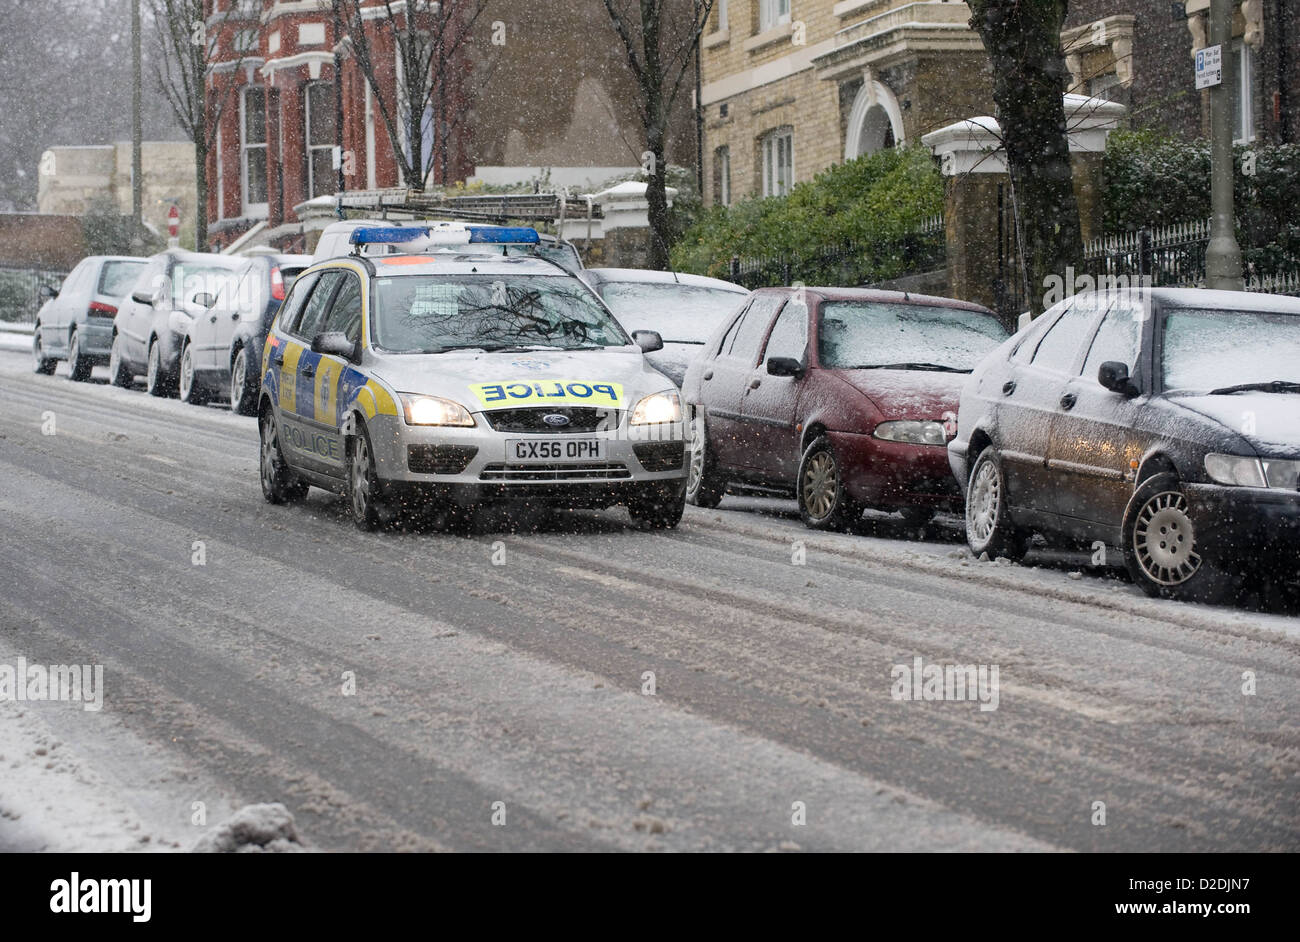 A Police car drives down a road covered in snow and slush in Brighton, East Sussex, England, United Kingdom. UK - Stock Image